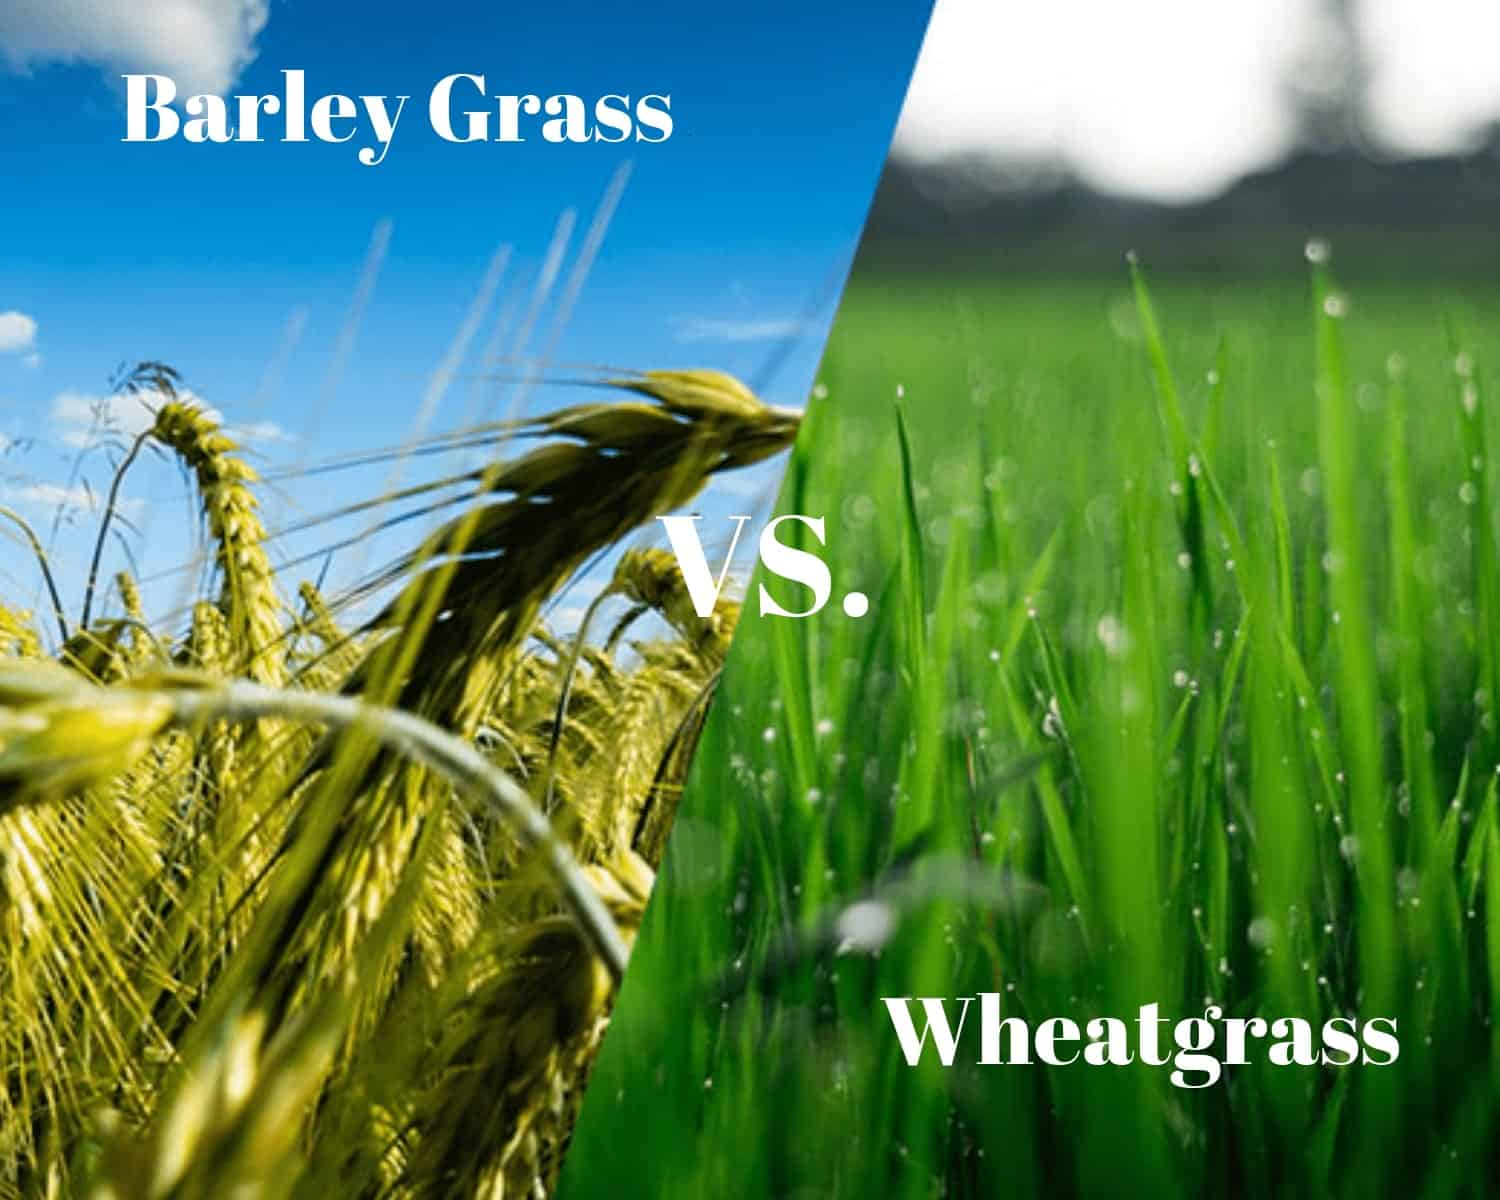 what is the difference between wheatgrass and barley grass?